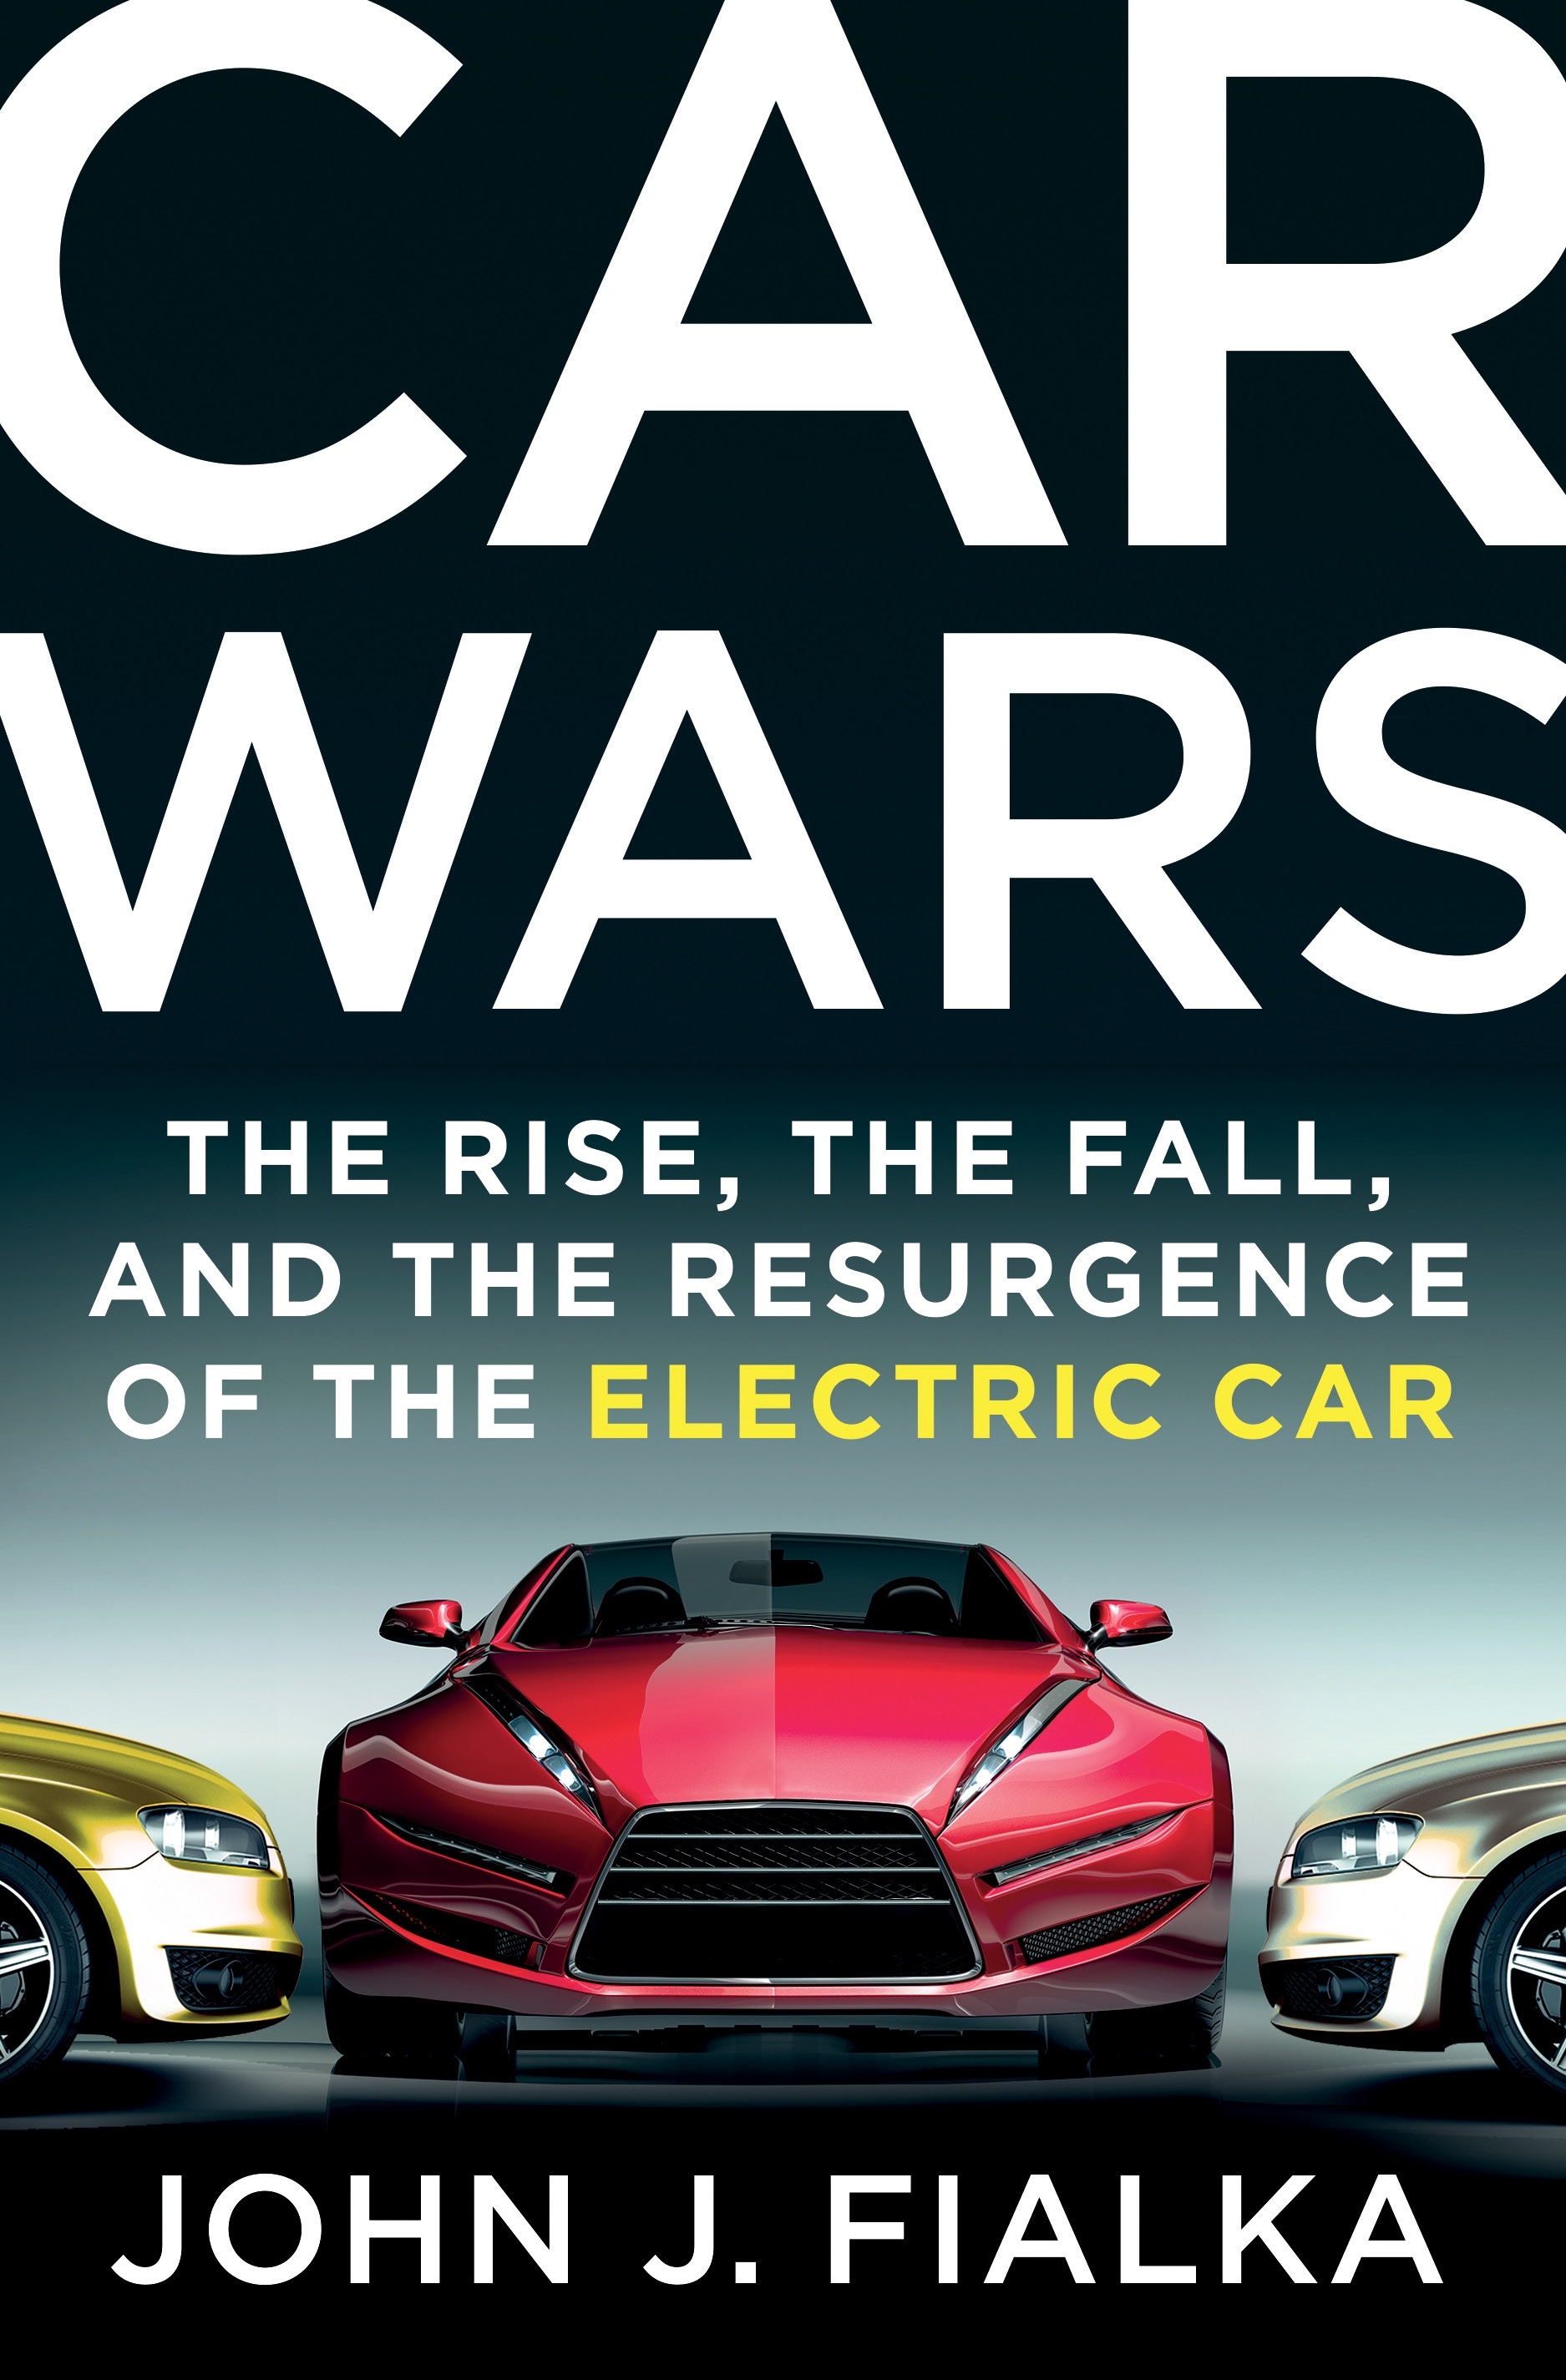 Car Wars The Rise, The Fall and the Resurgence of the Electric Car